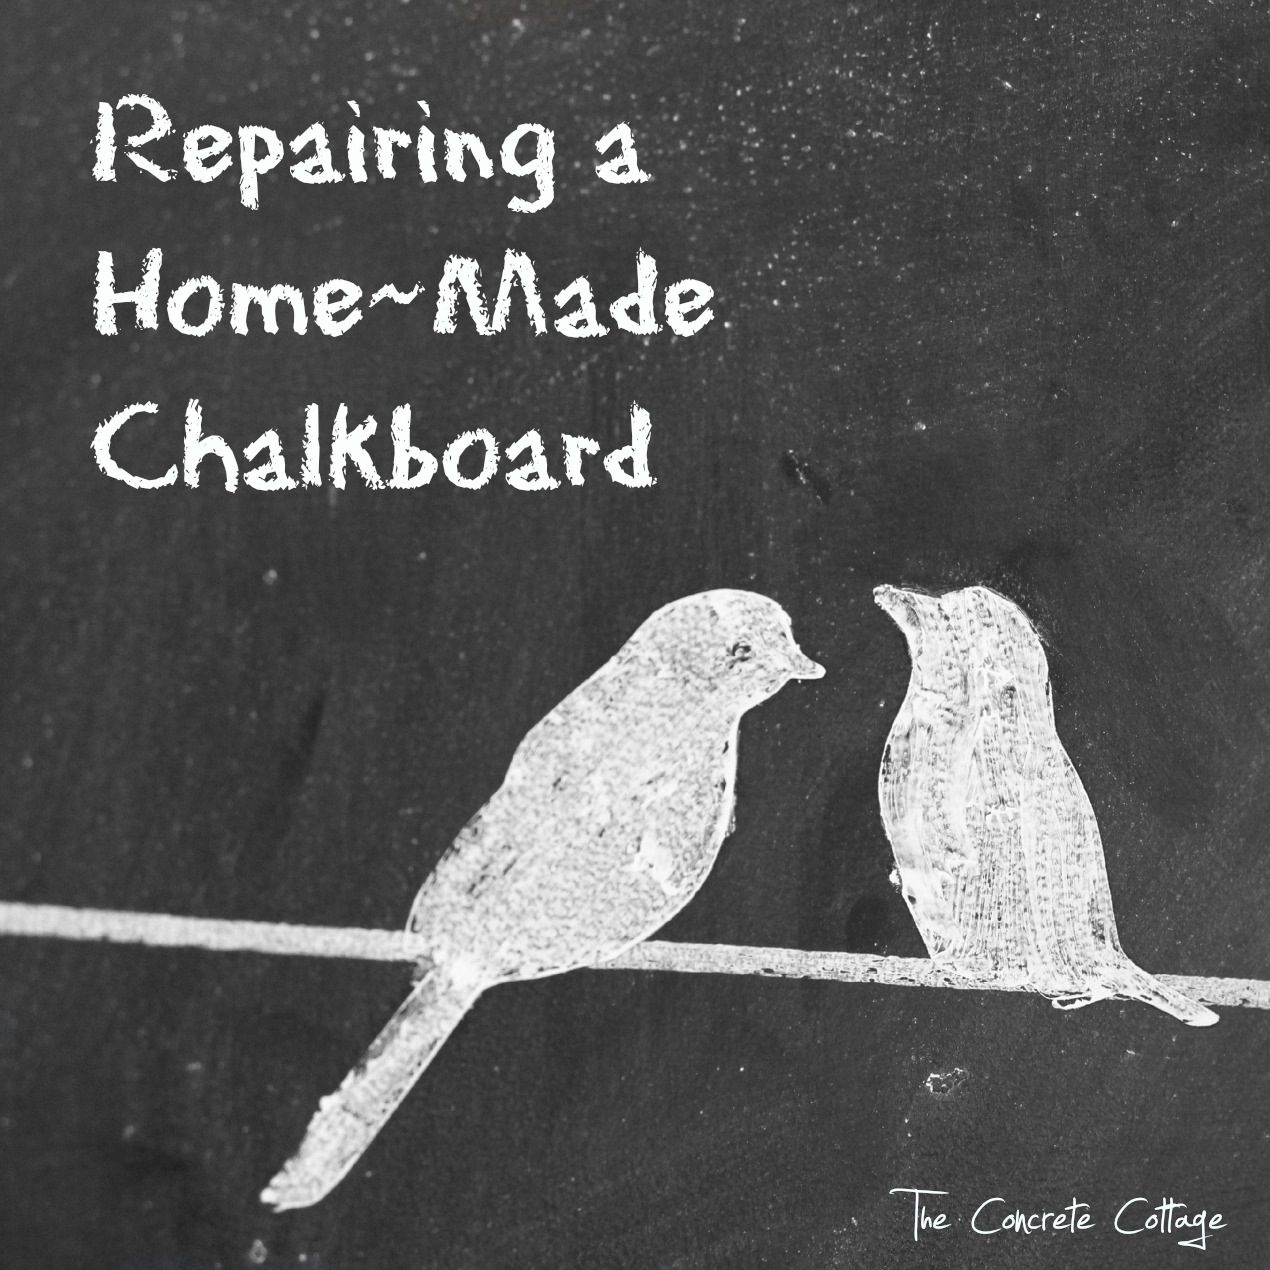 How to repair a home made chalkboard.